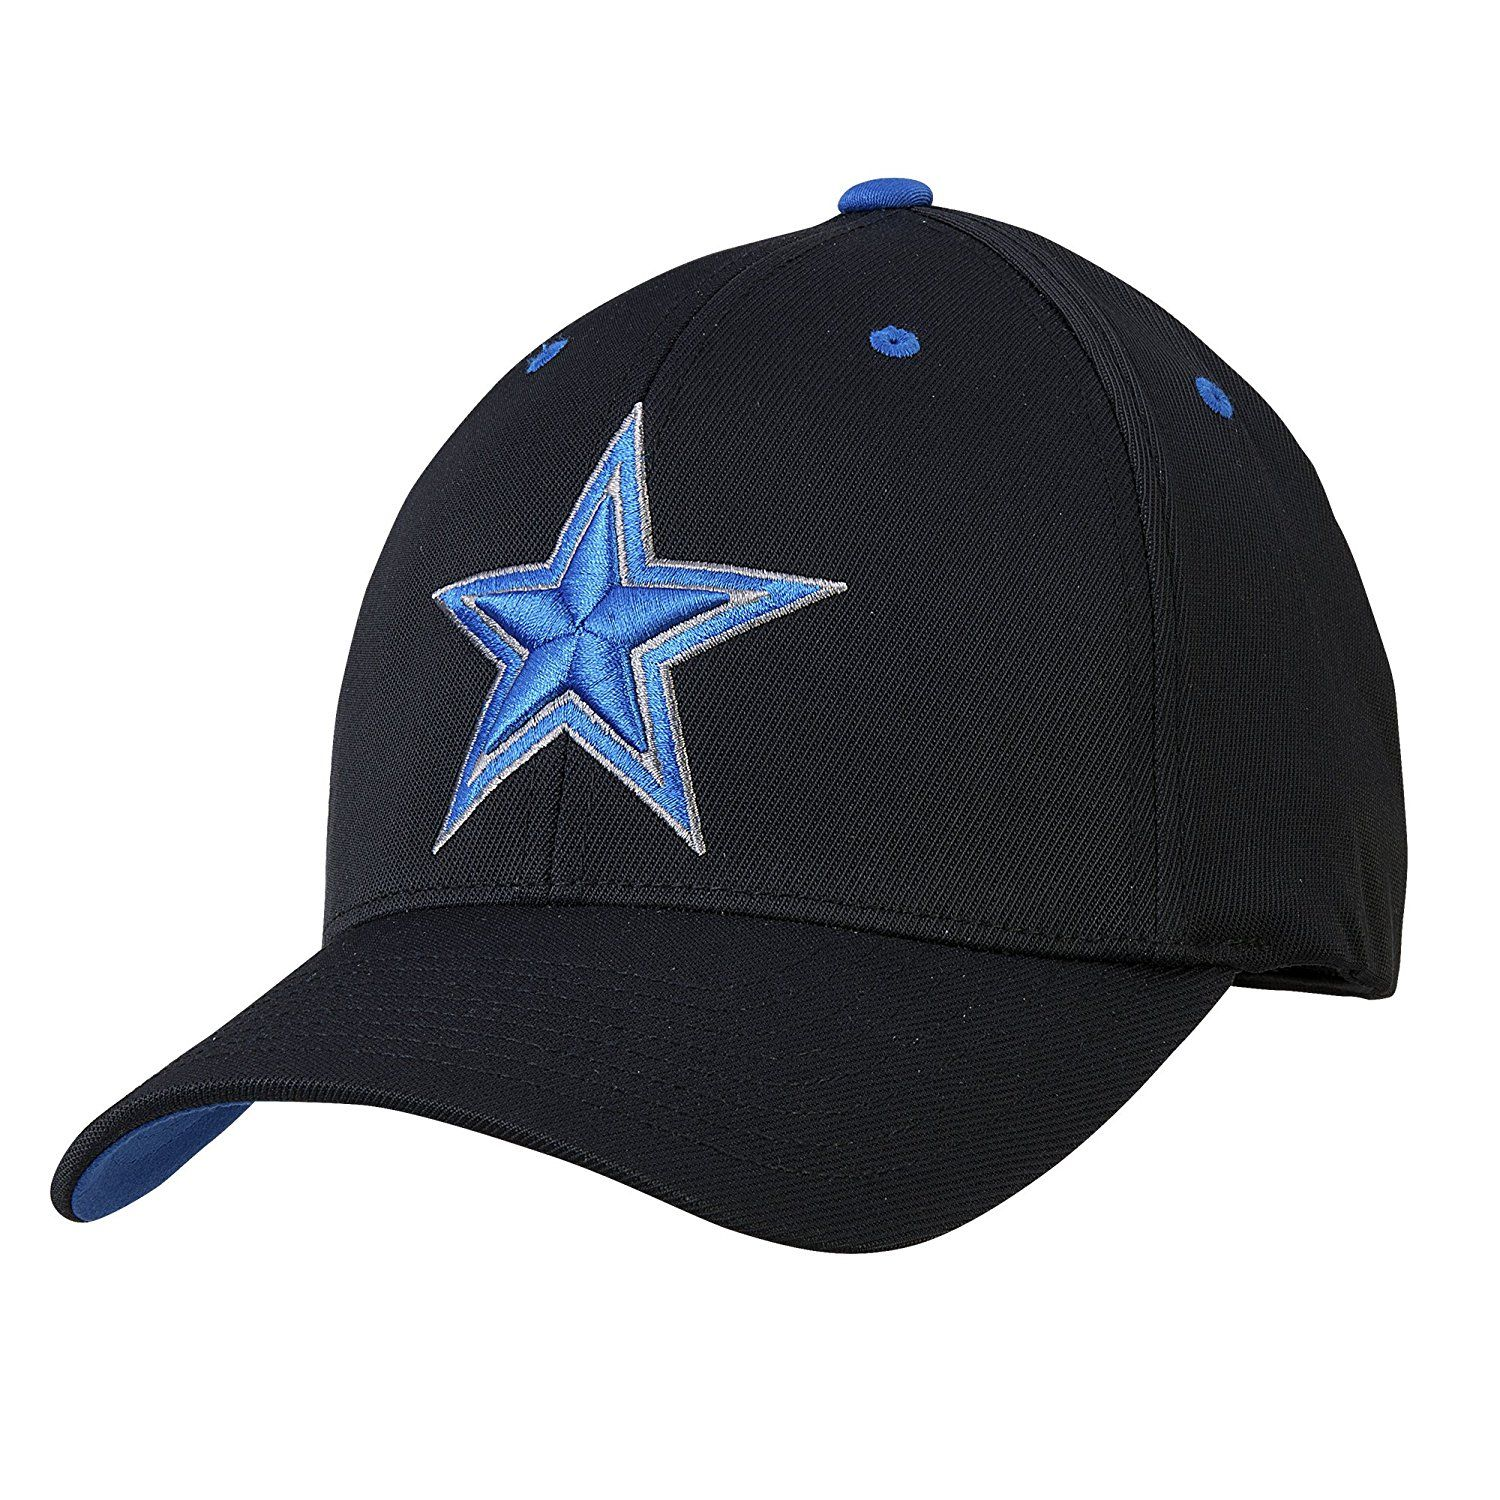 free shipping 4e60f 8bdc5 Dallas Cowboys Mens Electric Aura Star Flex Fit Cap, Price   19.99 http